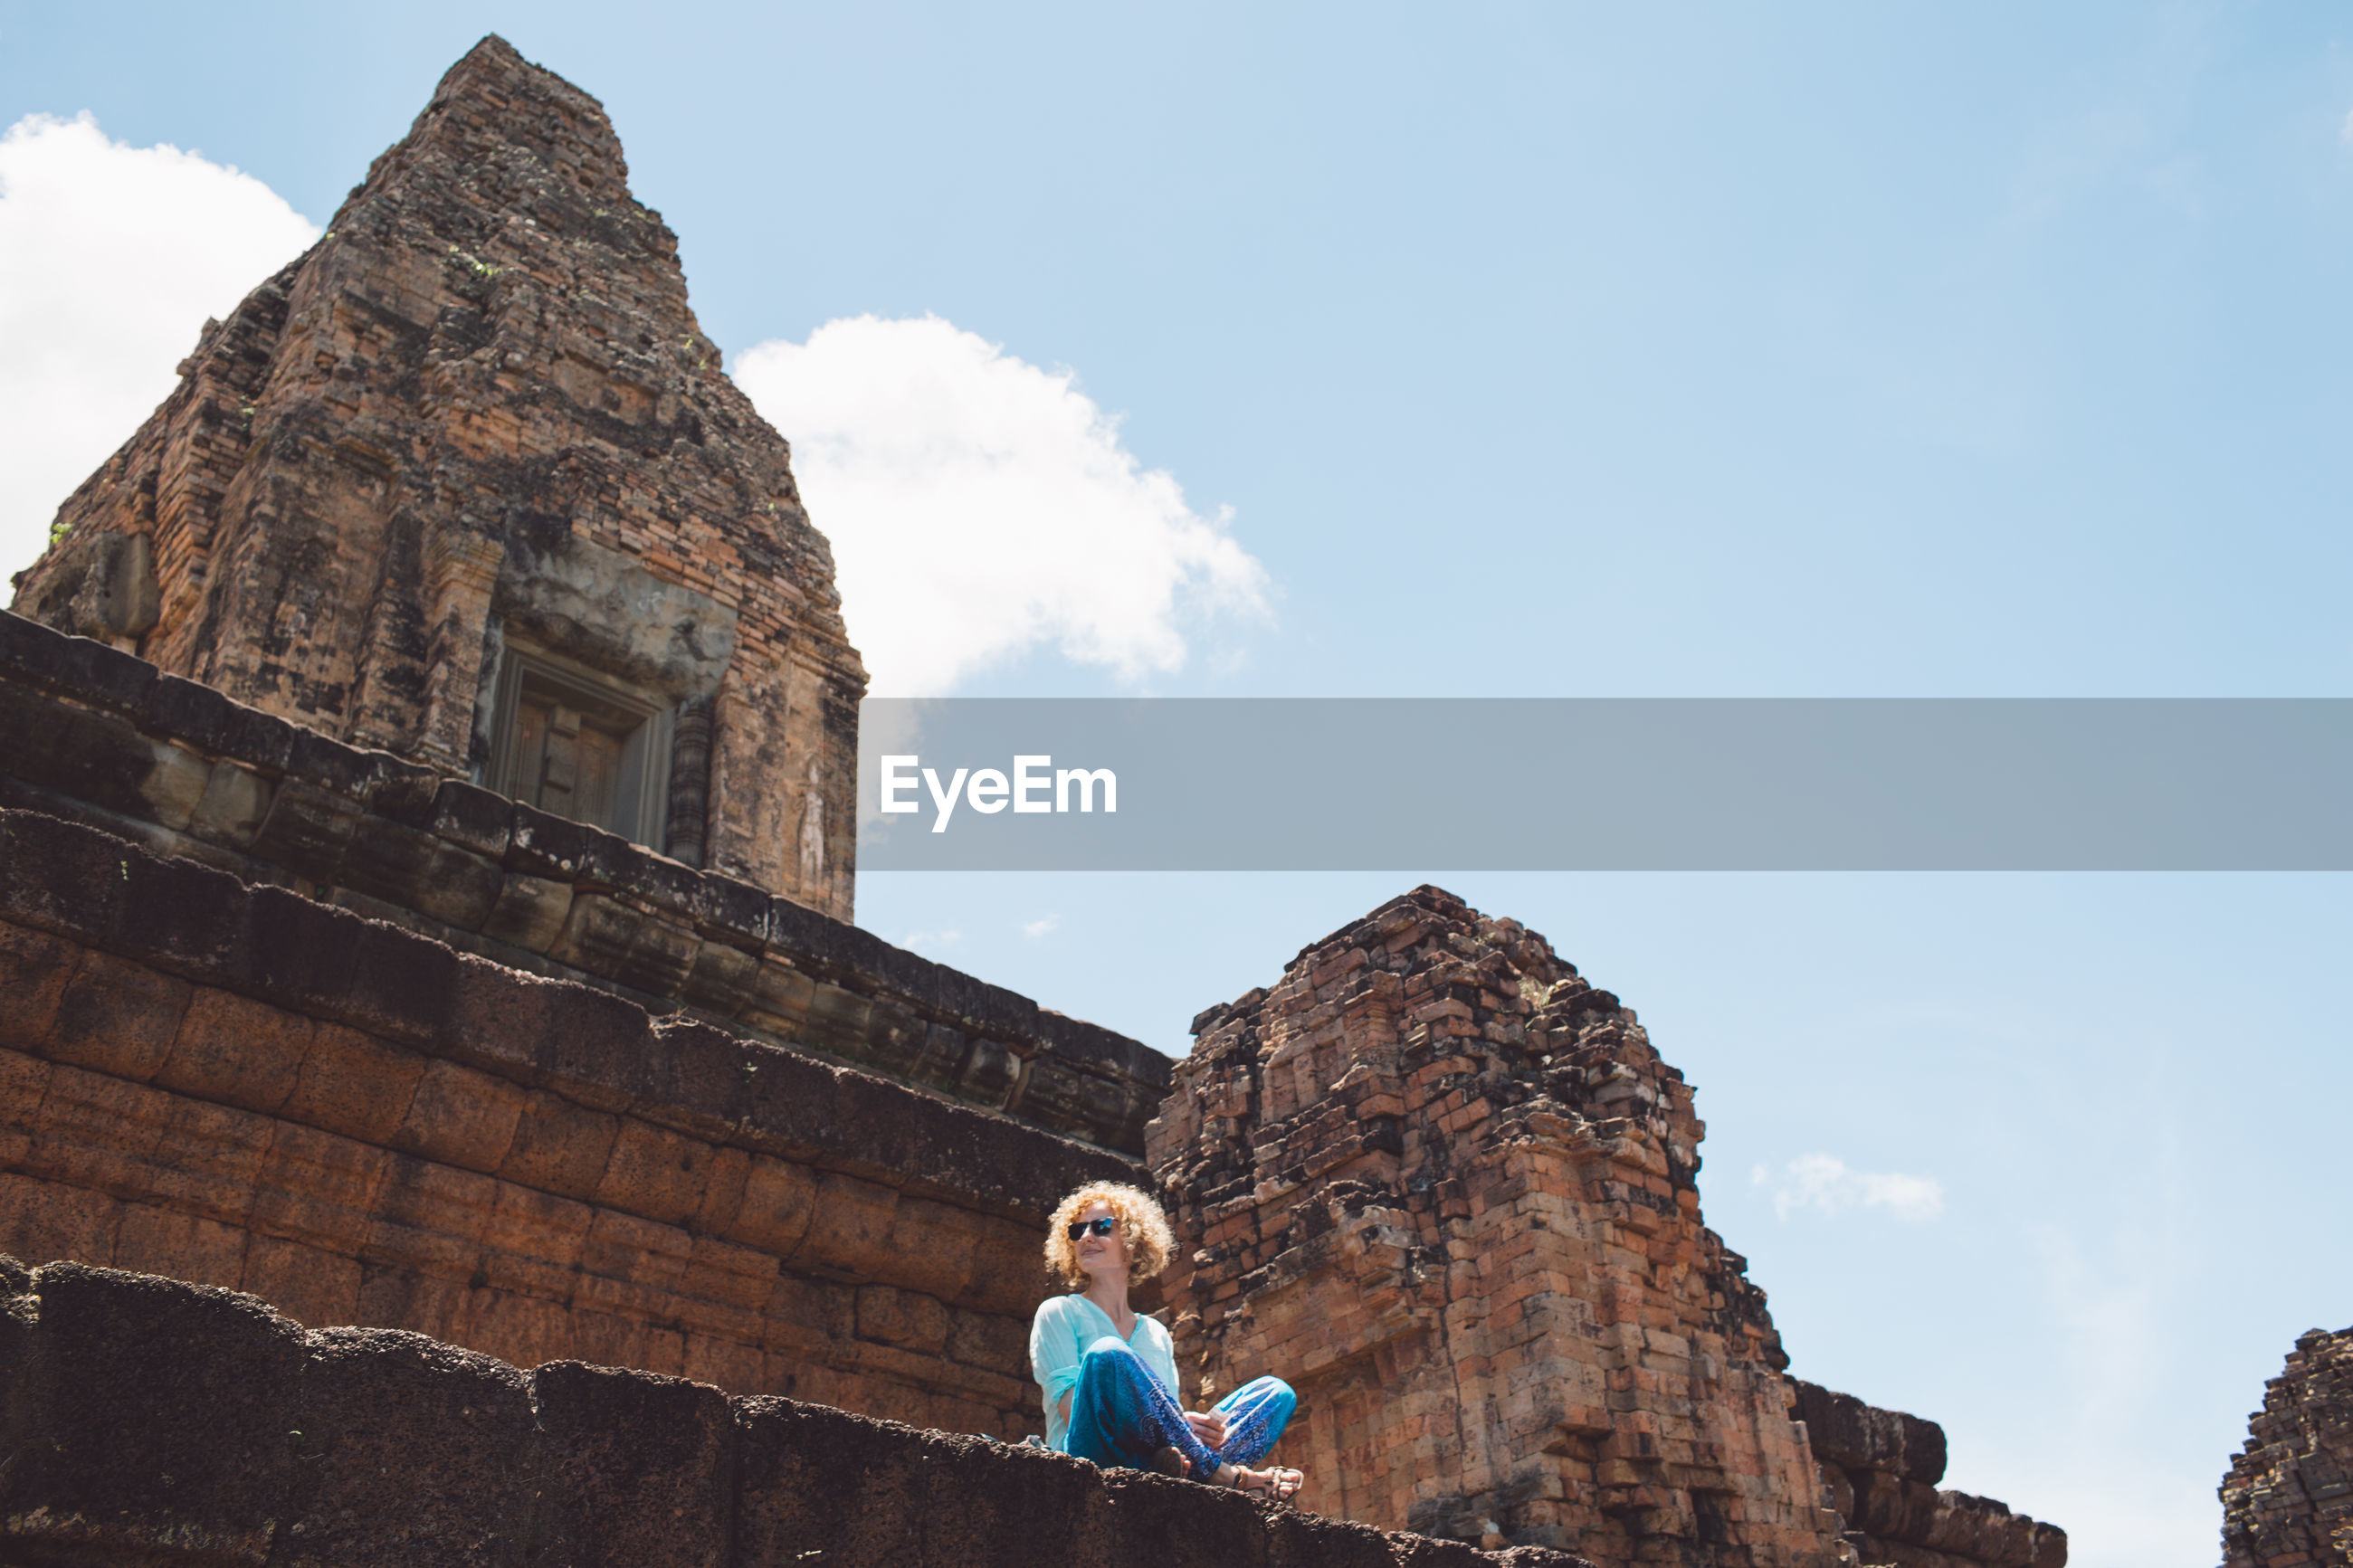 Low angle view of woman sitting on historic building against sky